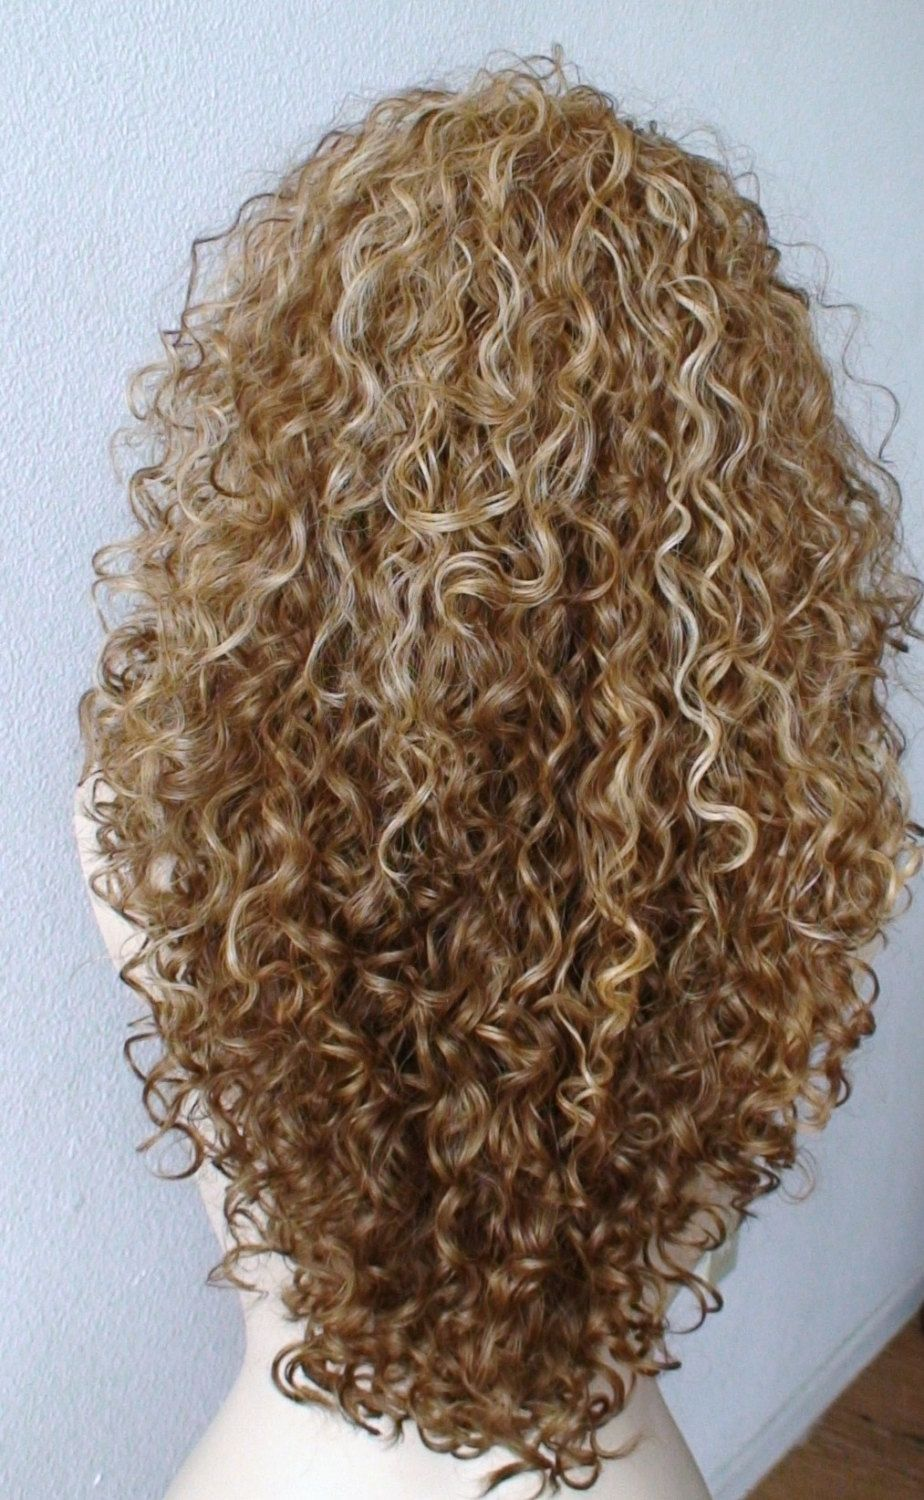 Dirty Blonde Ombre Color With Dark Roots Style Heavy Curly